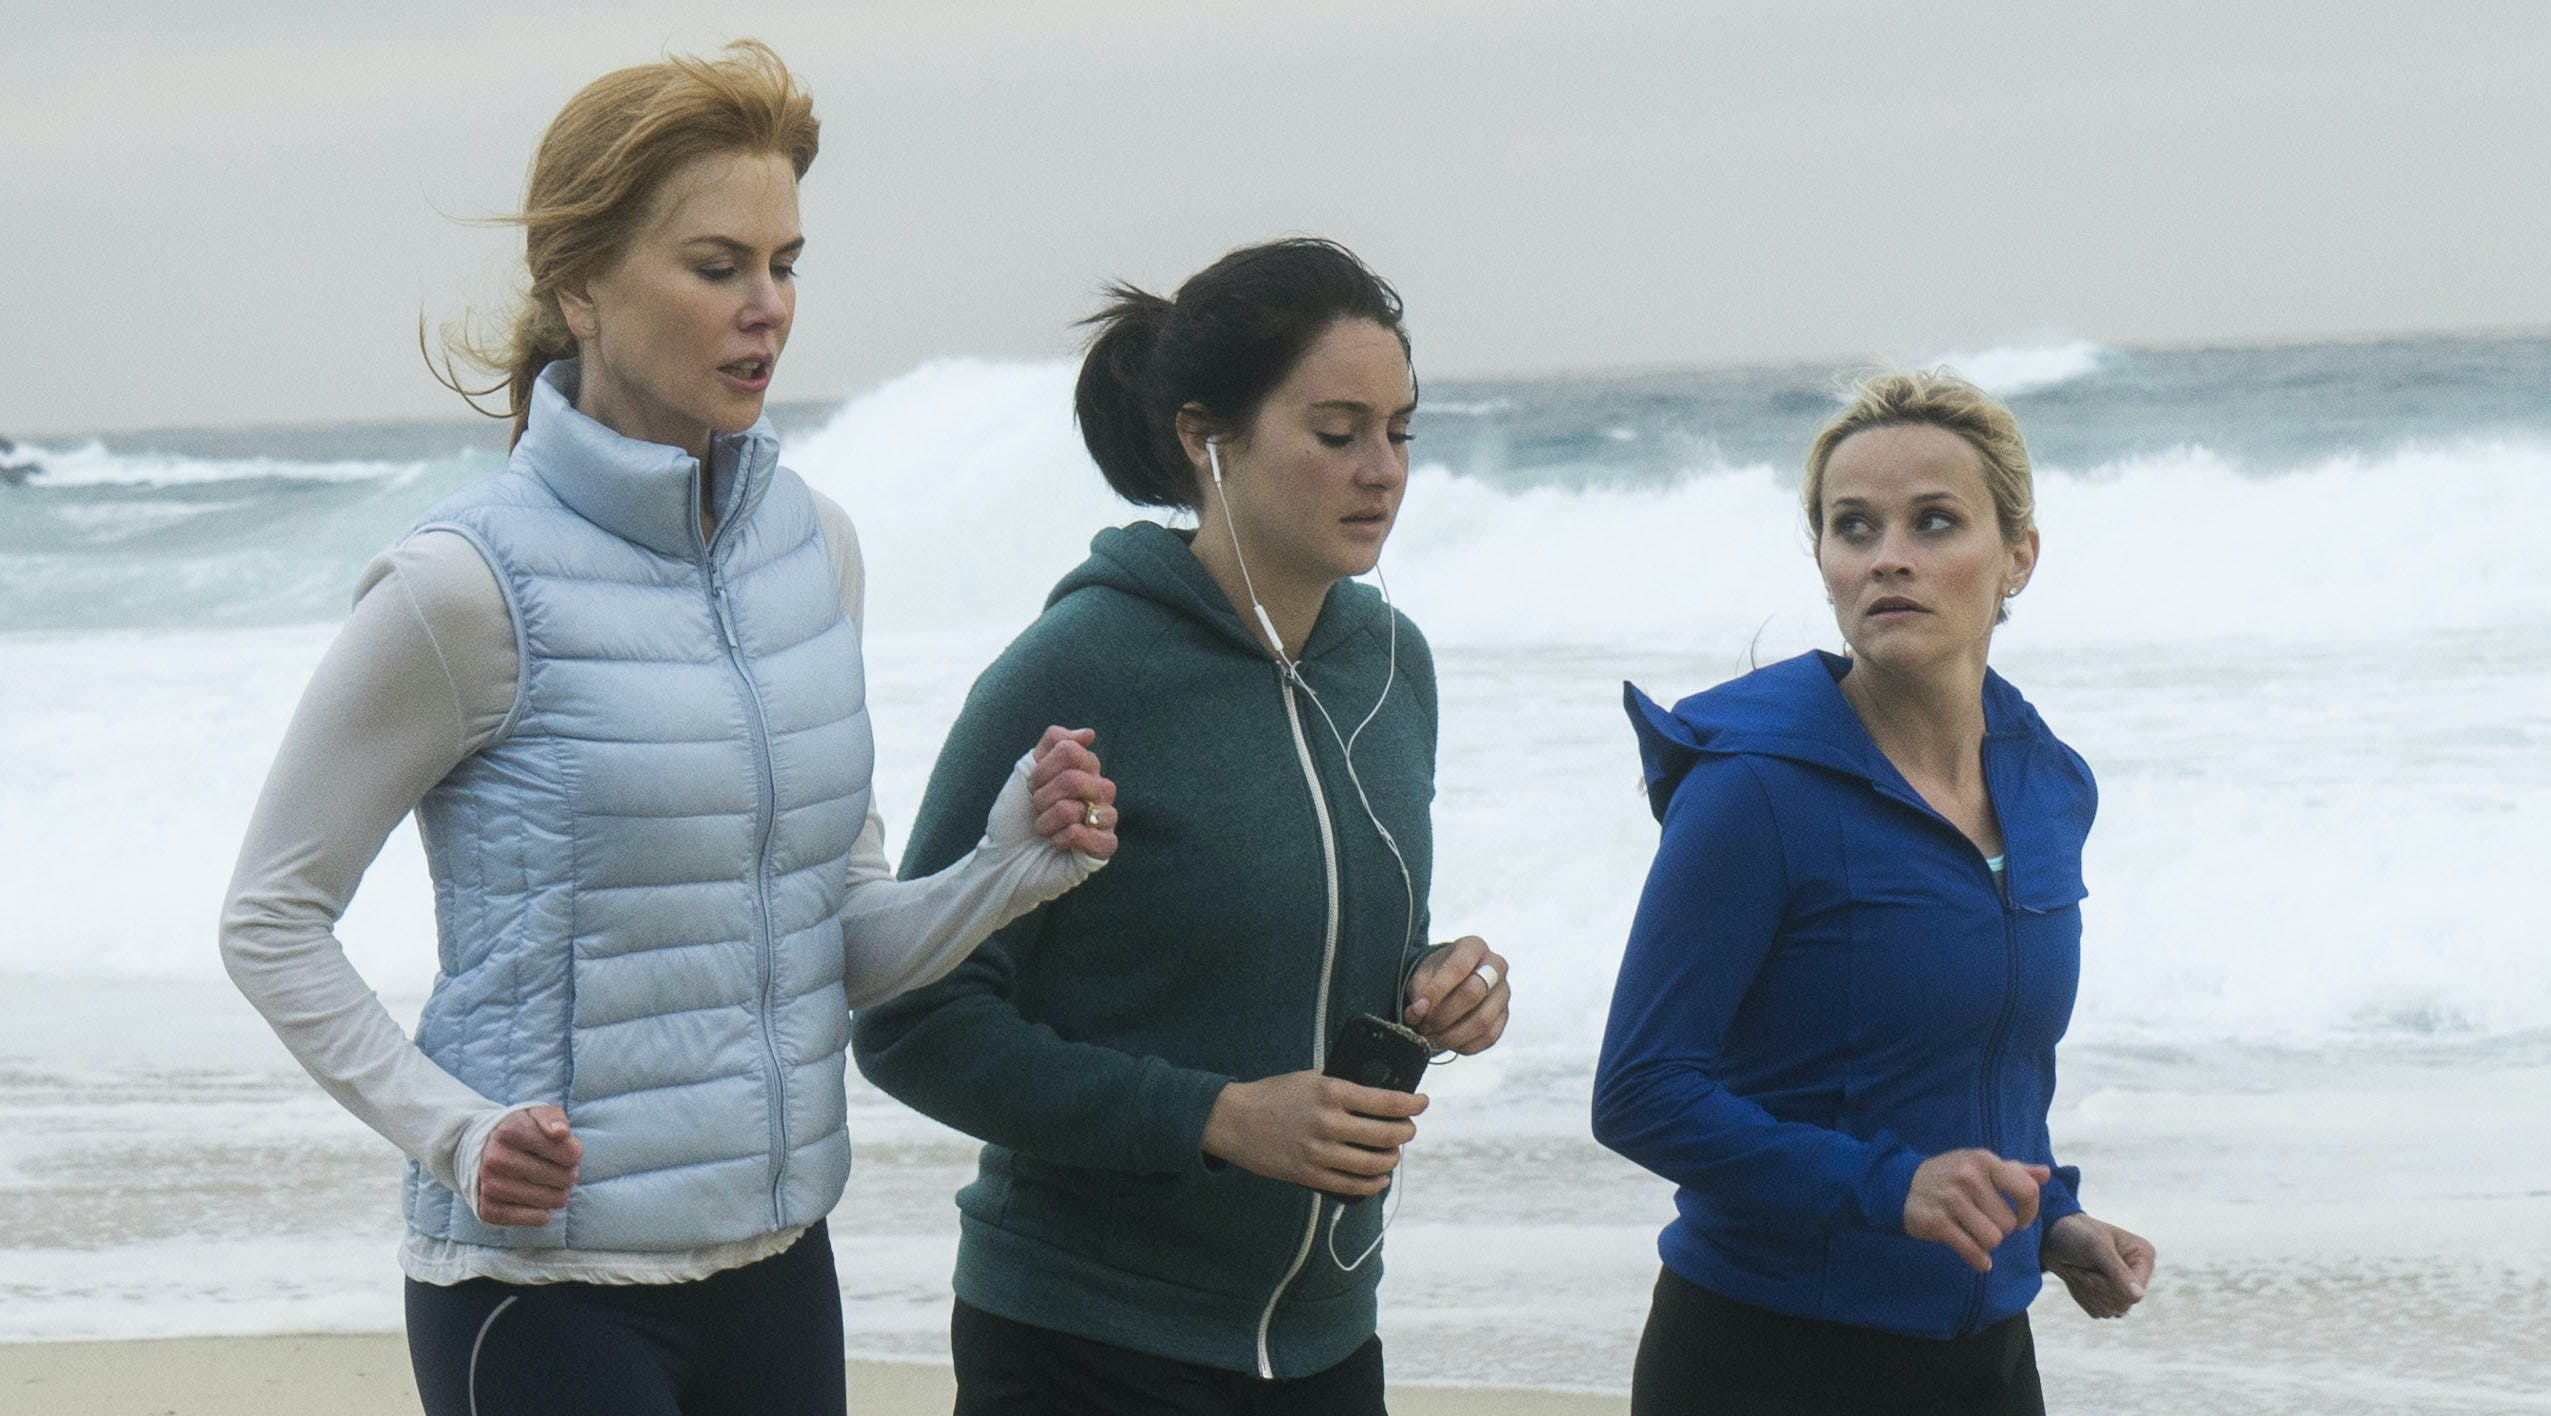 More 'Big Little Lies' to Be Told? Season 2 in Talks